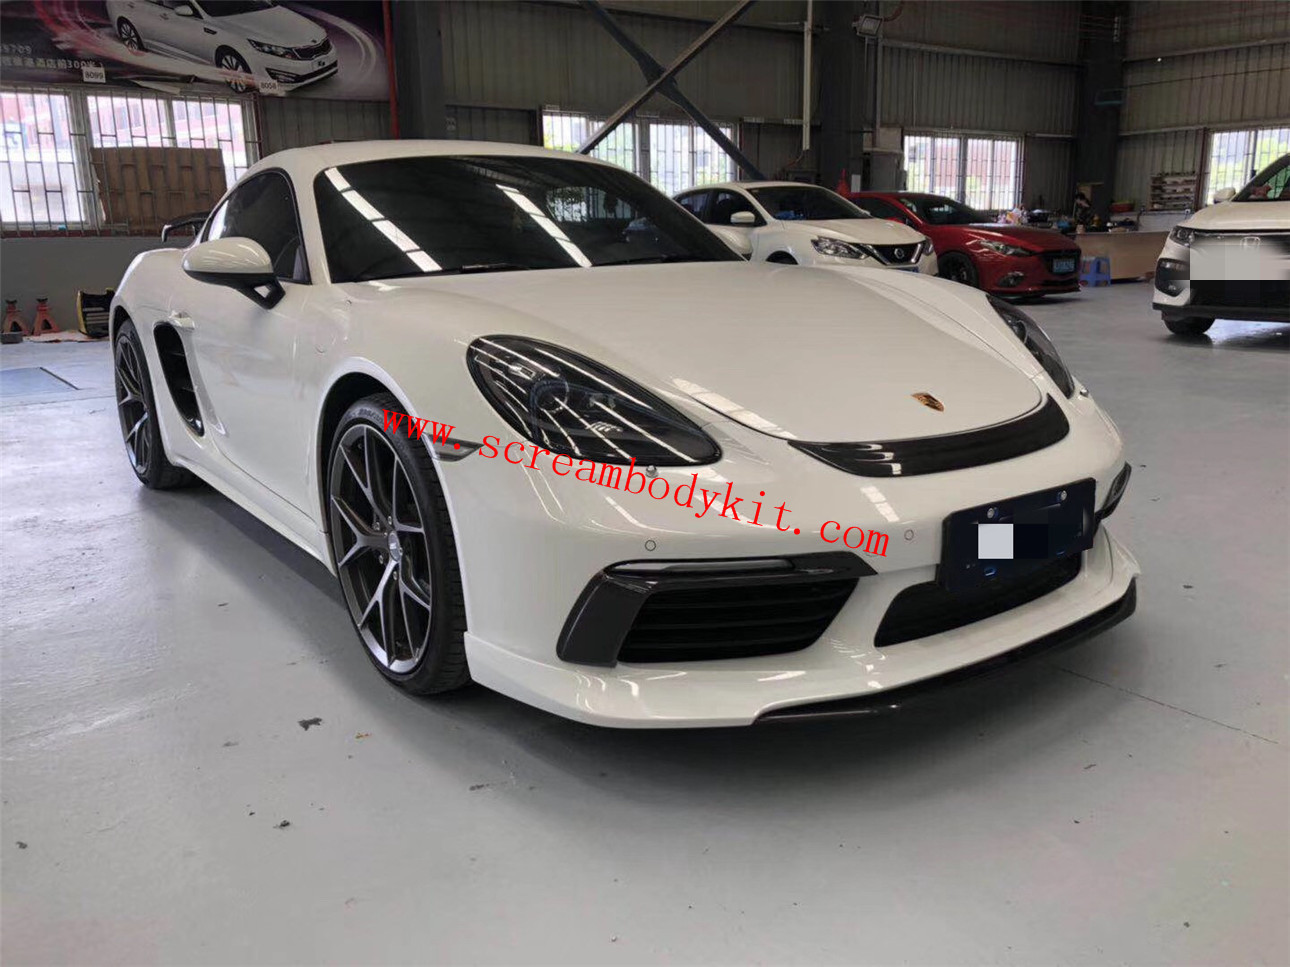 Porsche 718 Cayman boxster update techart Carbon Fiber body kit front lip after lip side skirts spoiler